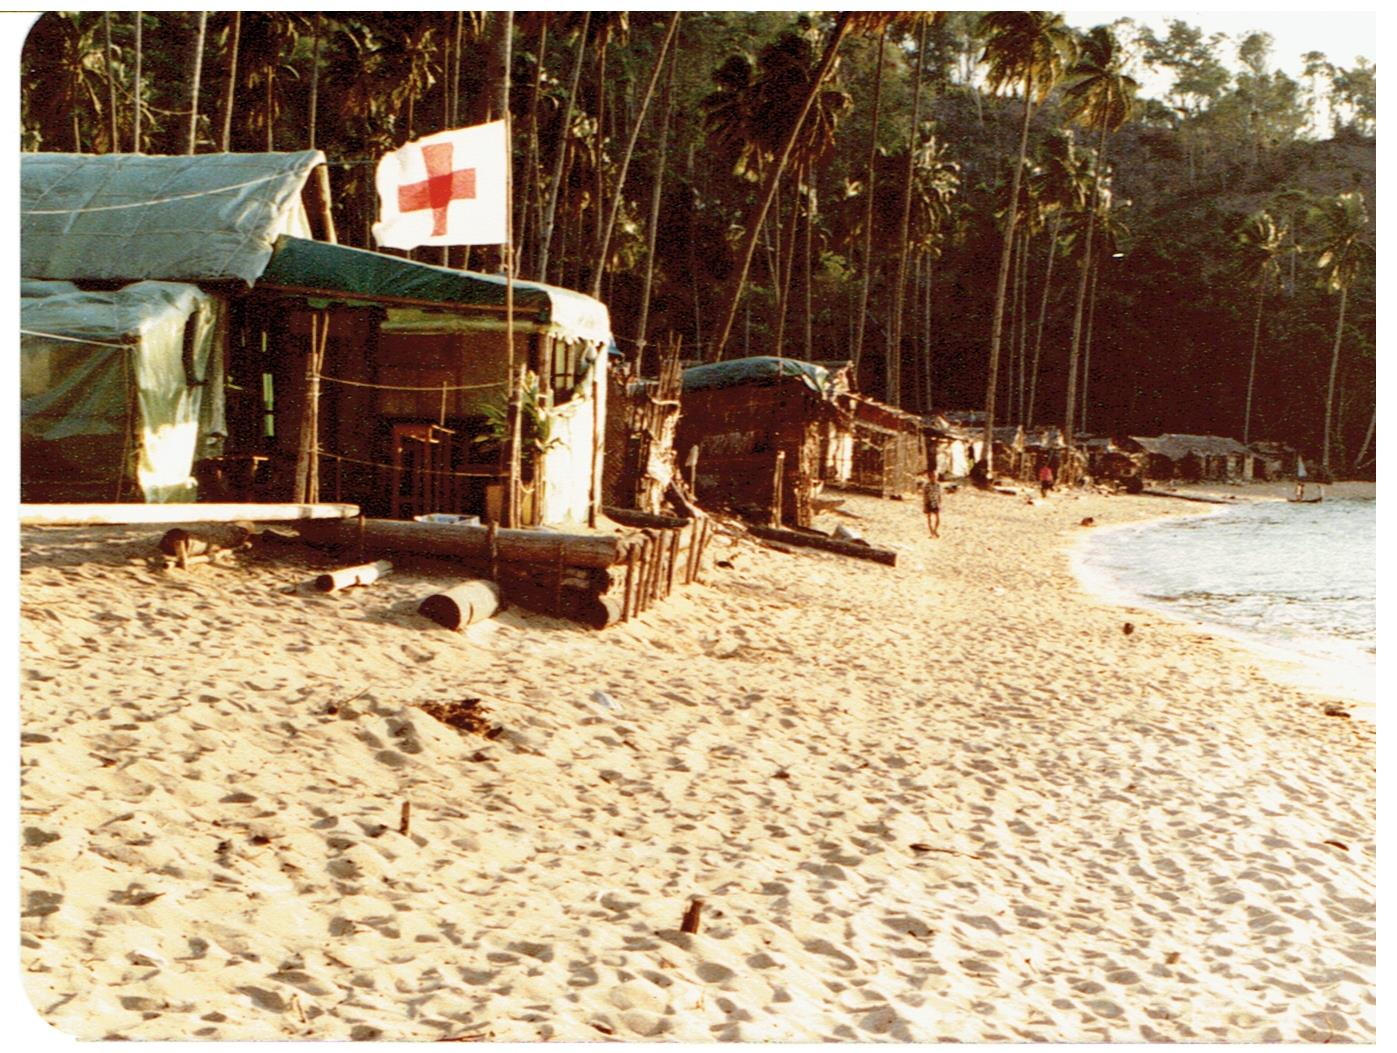 The Red Cross at Pulau Bidong Refugees Camp, Malaysia